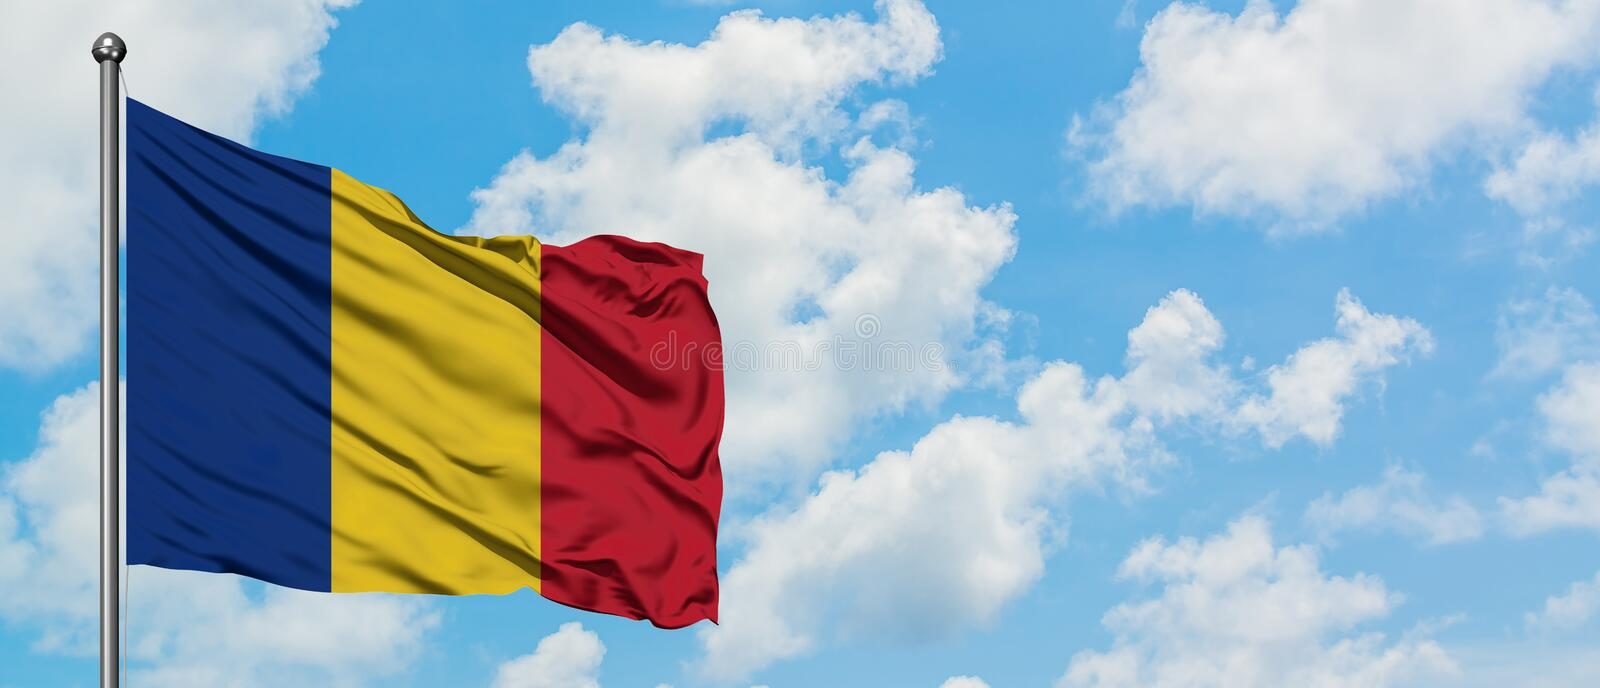 Romania flag waving in the wind against white cloudy blue sky. Diplomacy concept, international relations.  royalty free stock images